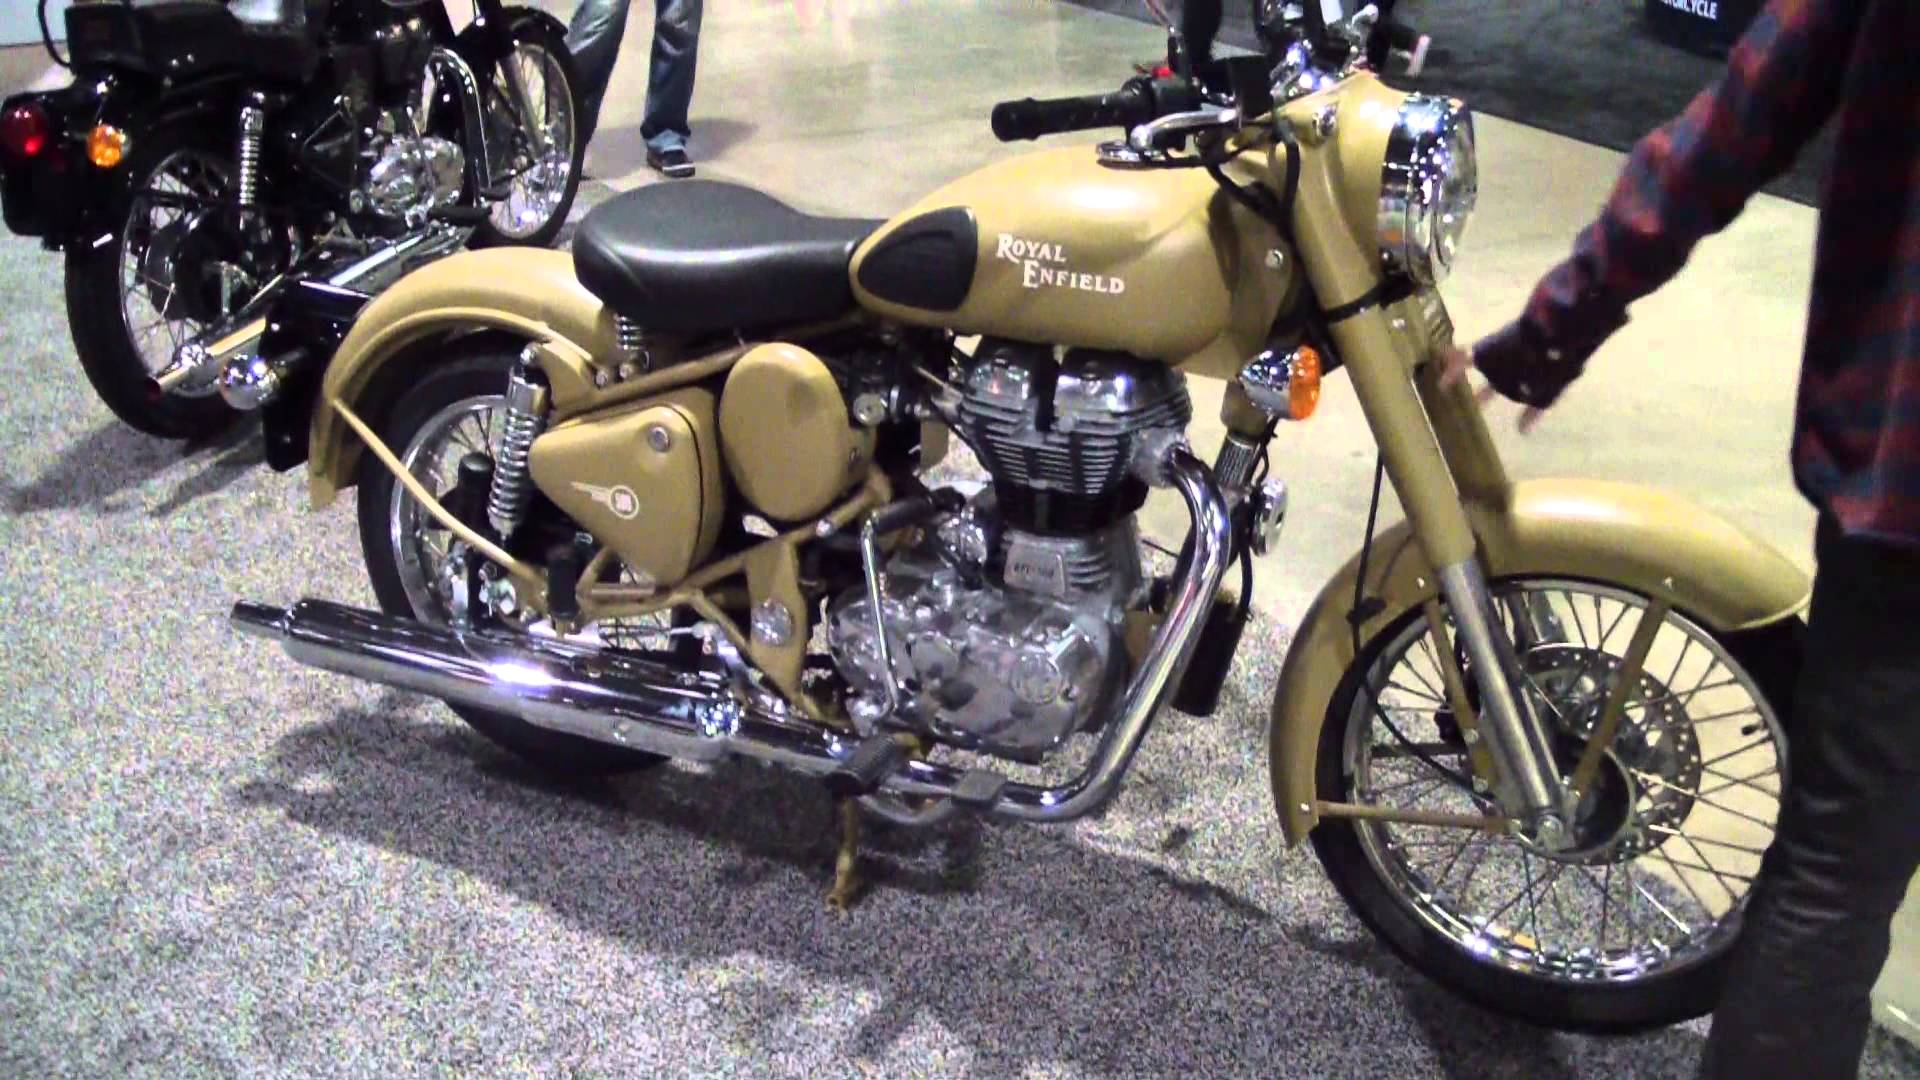 Royal Enfield Bullet 500 Army 2006 images #123606